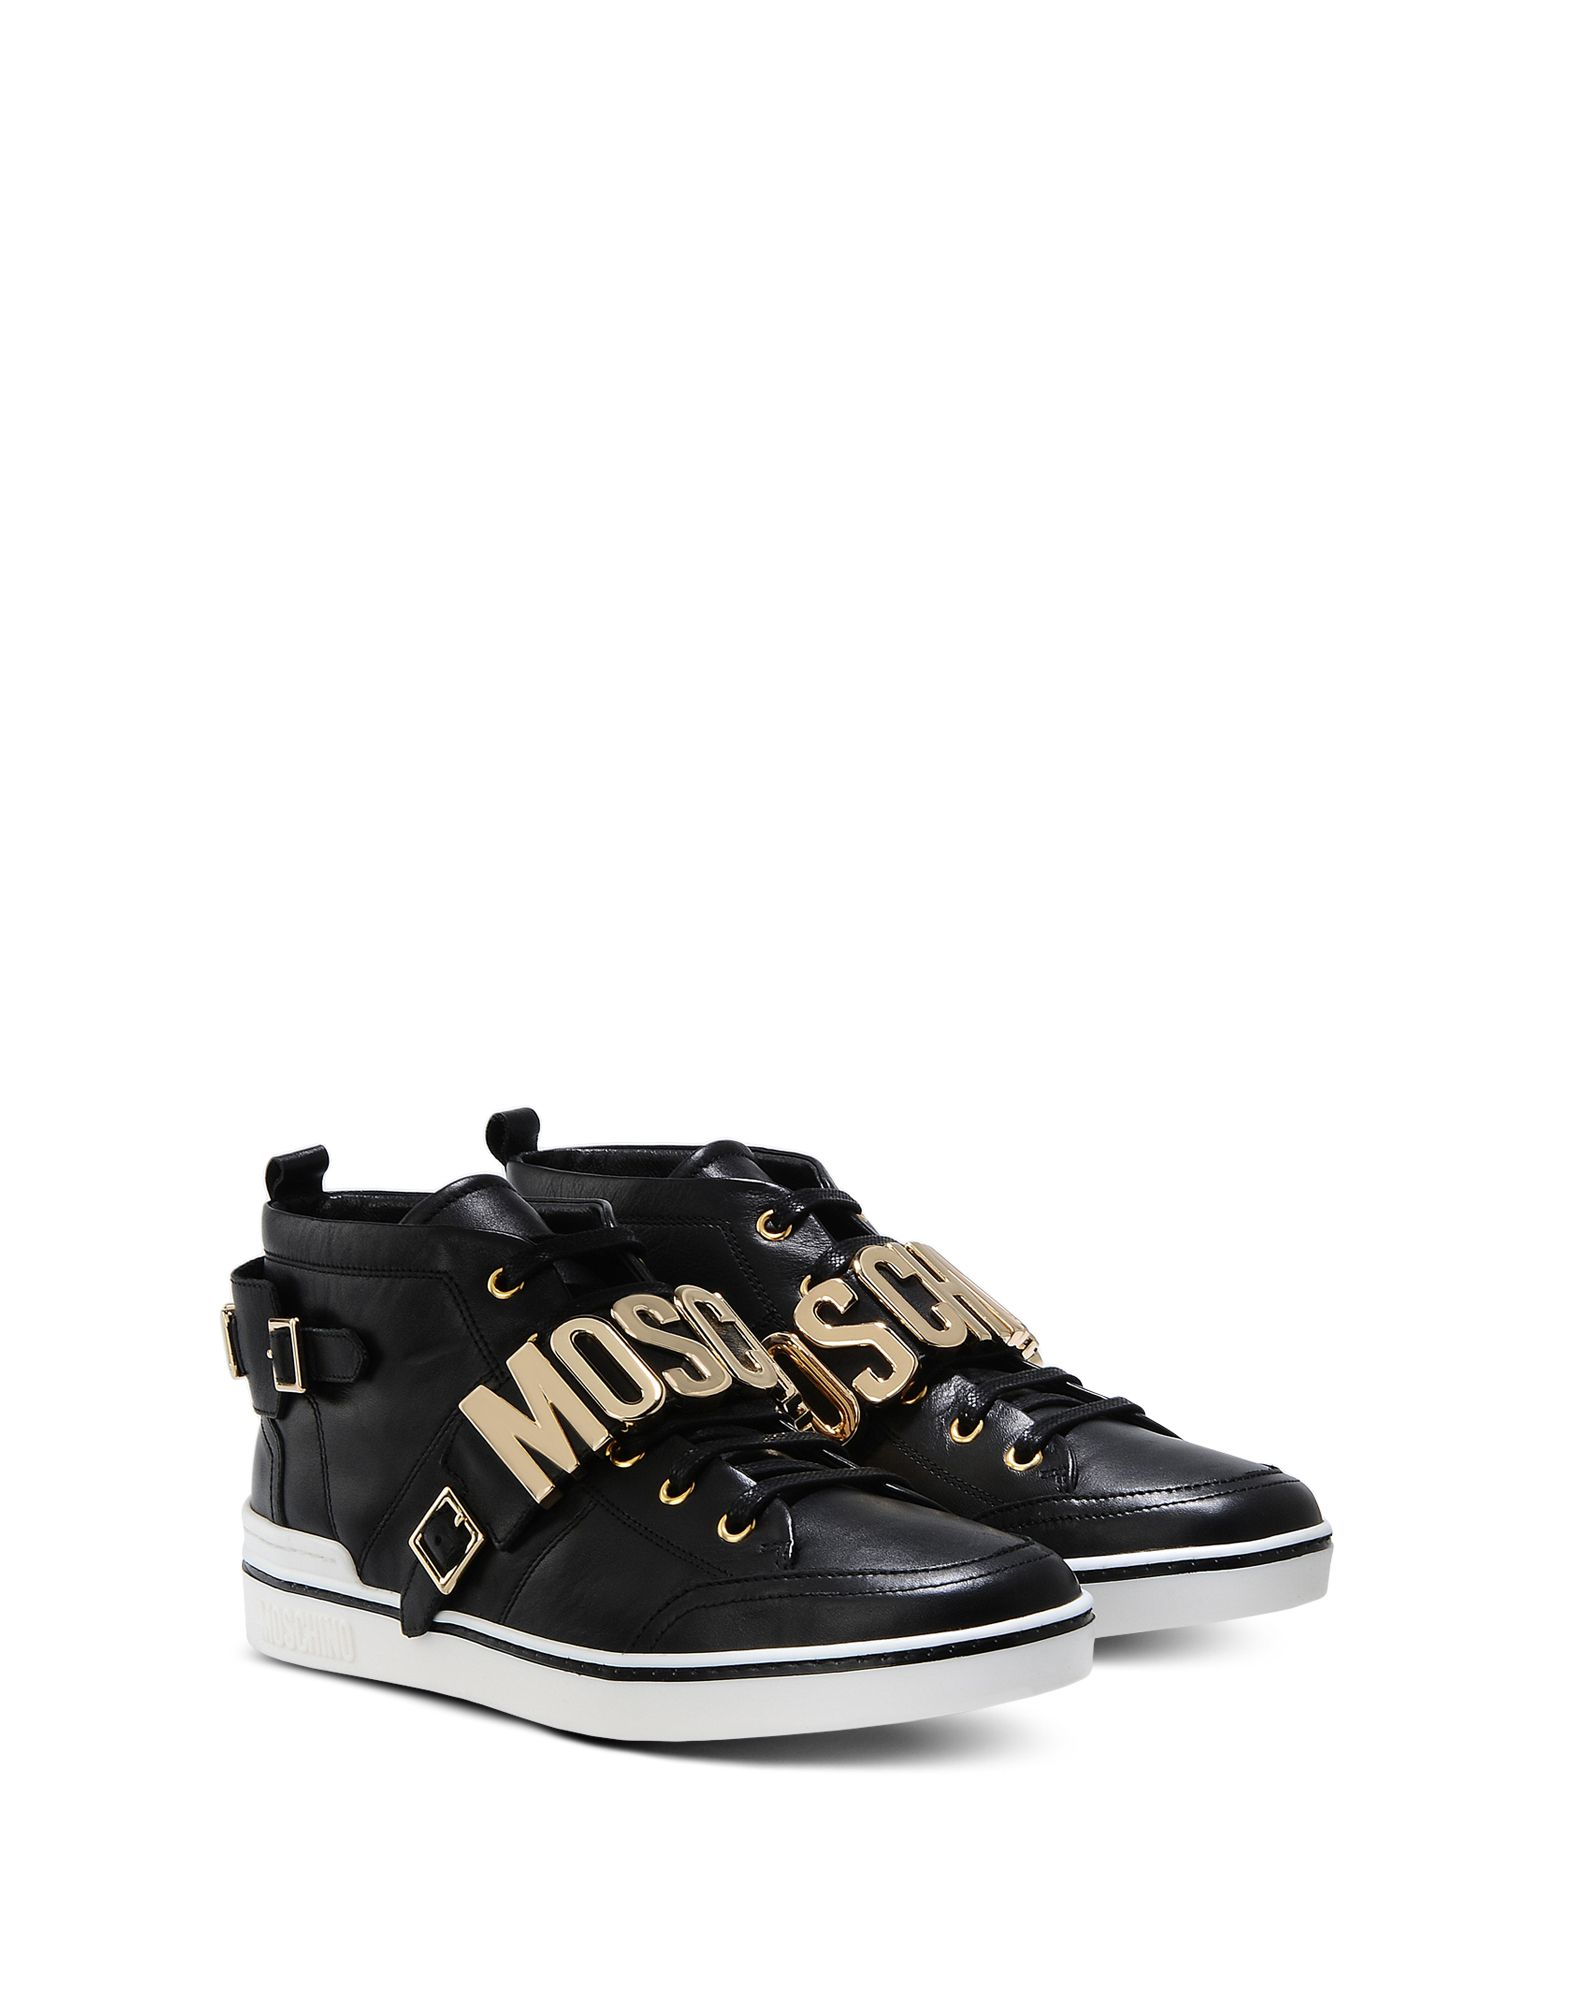 Lyst Moschino Sneakers In Black For Men